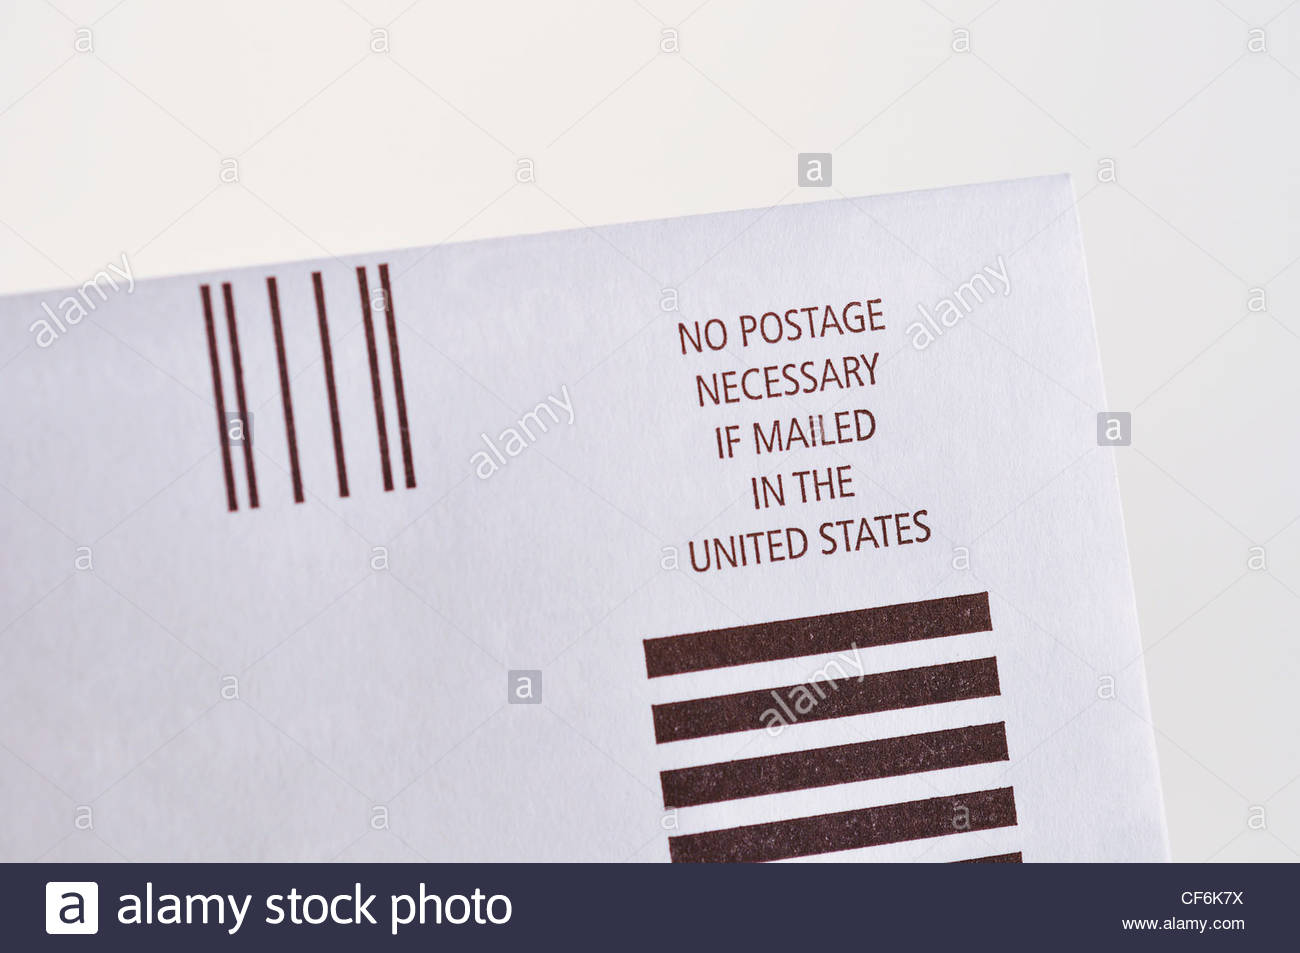 no postage necessary on letter prepaid envelope